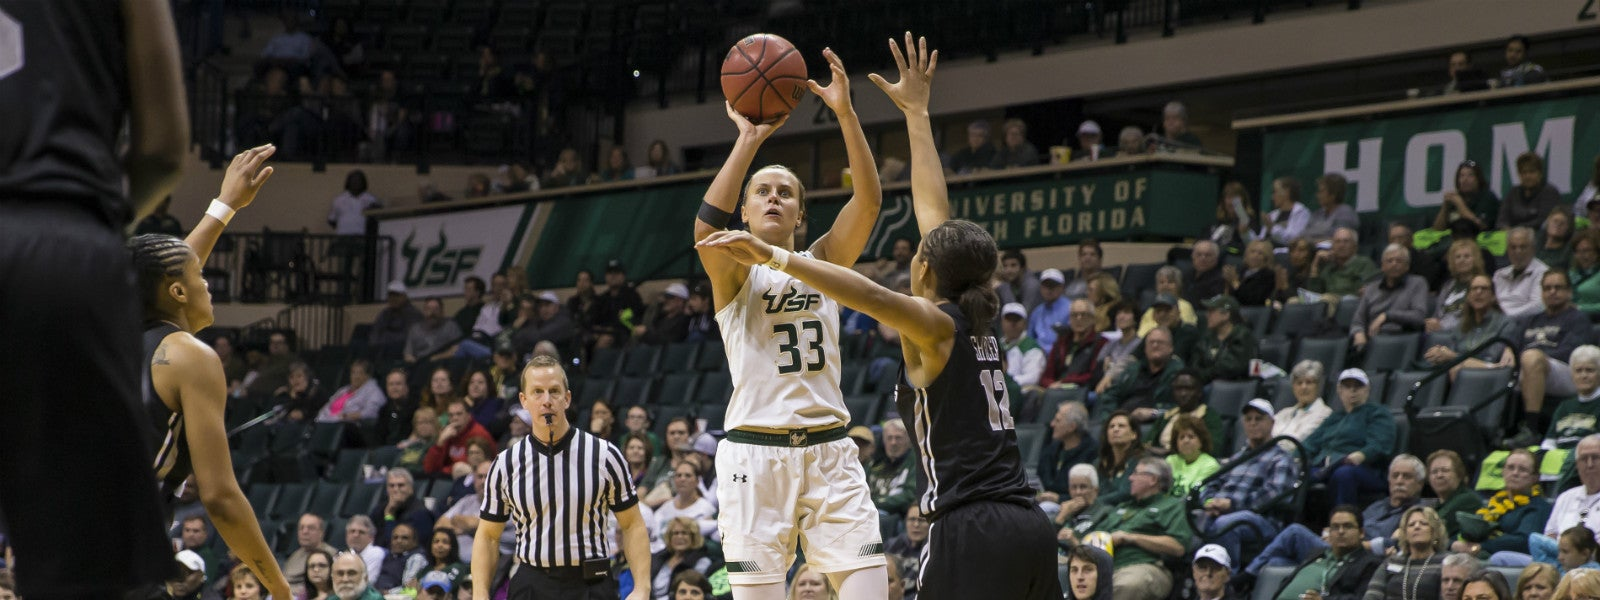 USF Women's Basketball vs. Cincinnati